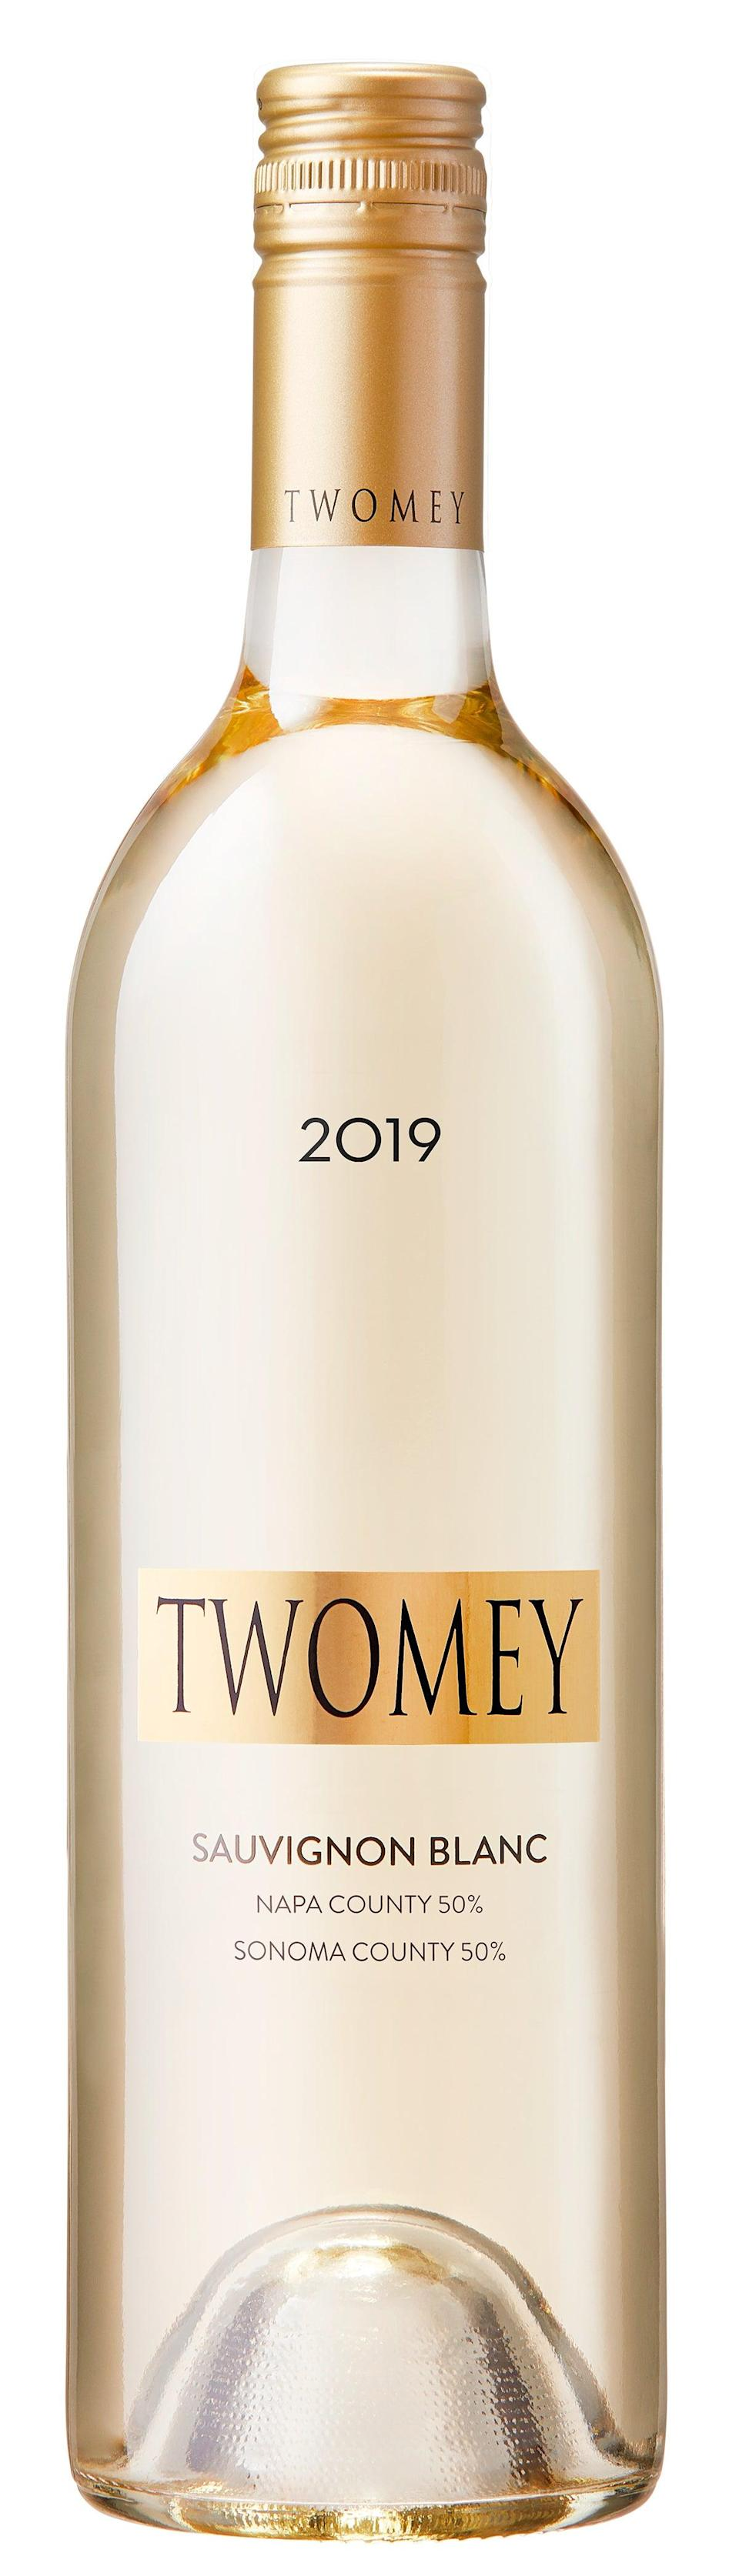 "Fot the one who enjoys a nice, crisp white. <br><br><strong>Twomey</strong> Twomey Cellars by Silver Oak Sauvignon Blanc 2019, $, available at <a href=""https://go.skimresources.com/?id=30283X879131&url=https%3A%2F%2Fwww.wine.com%2Fproduct%2Ftwomey-cellars-by-silver-oak-sauvignon-blanc-2019%2F621195"" rel=""nofollow noopener"" target=""_blank"" data-ylk=""slk:Wine.com"" class=""link rapid-noclick-resp"">Wine.com</a>"